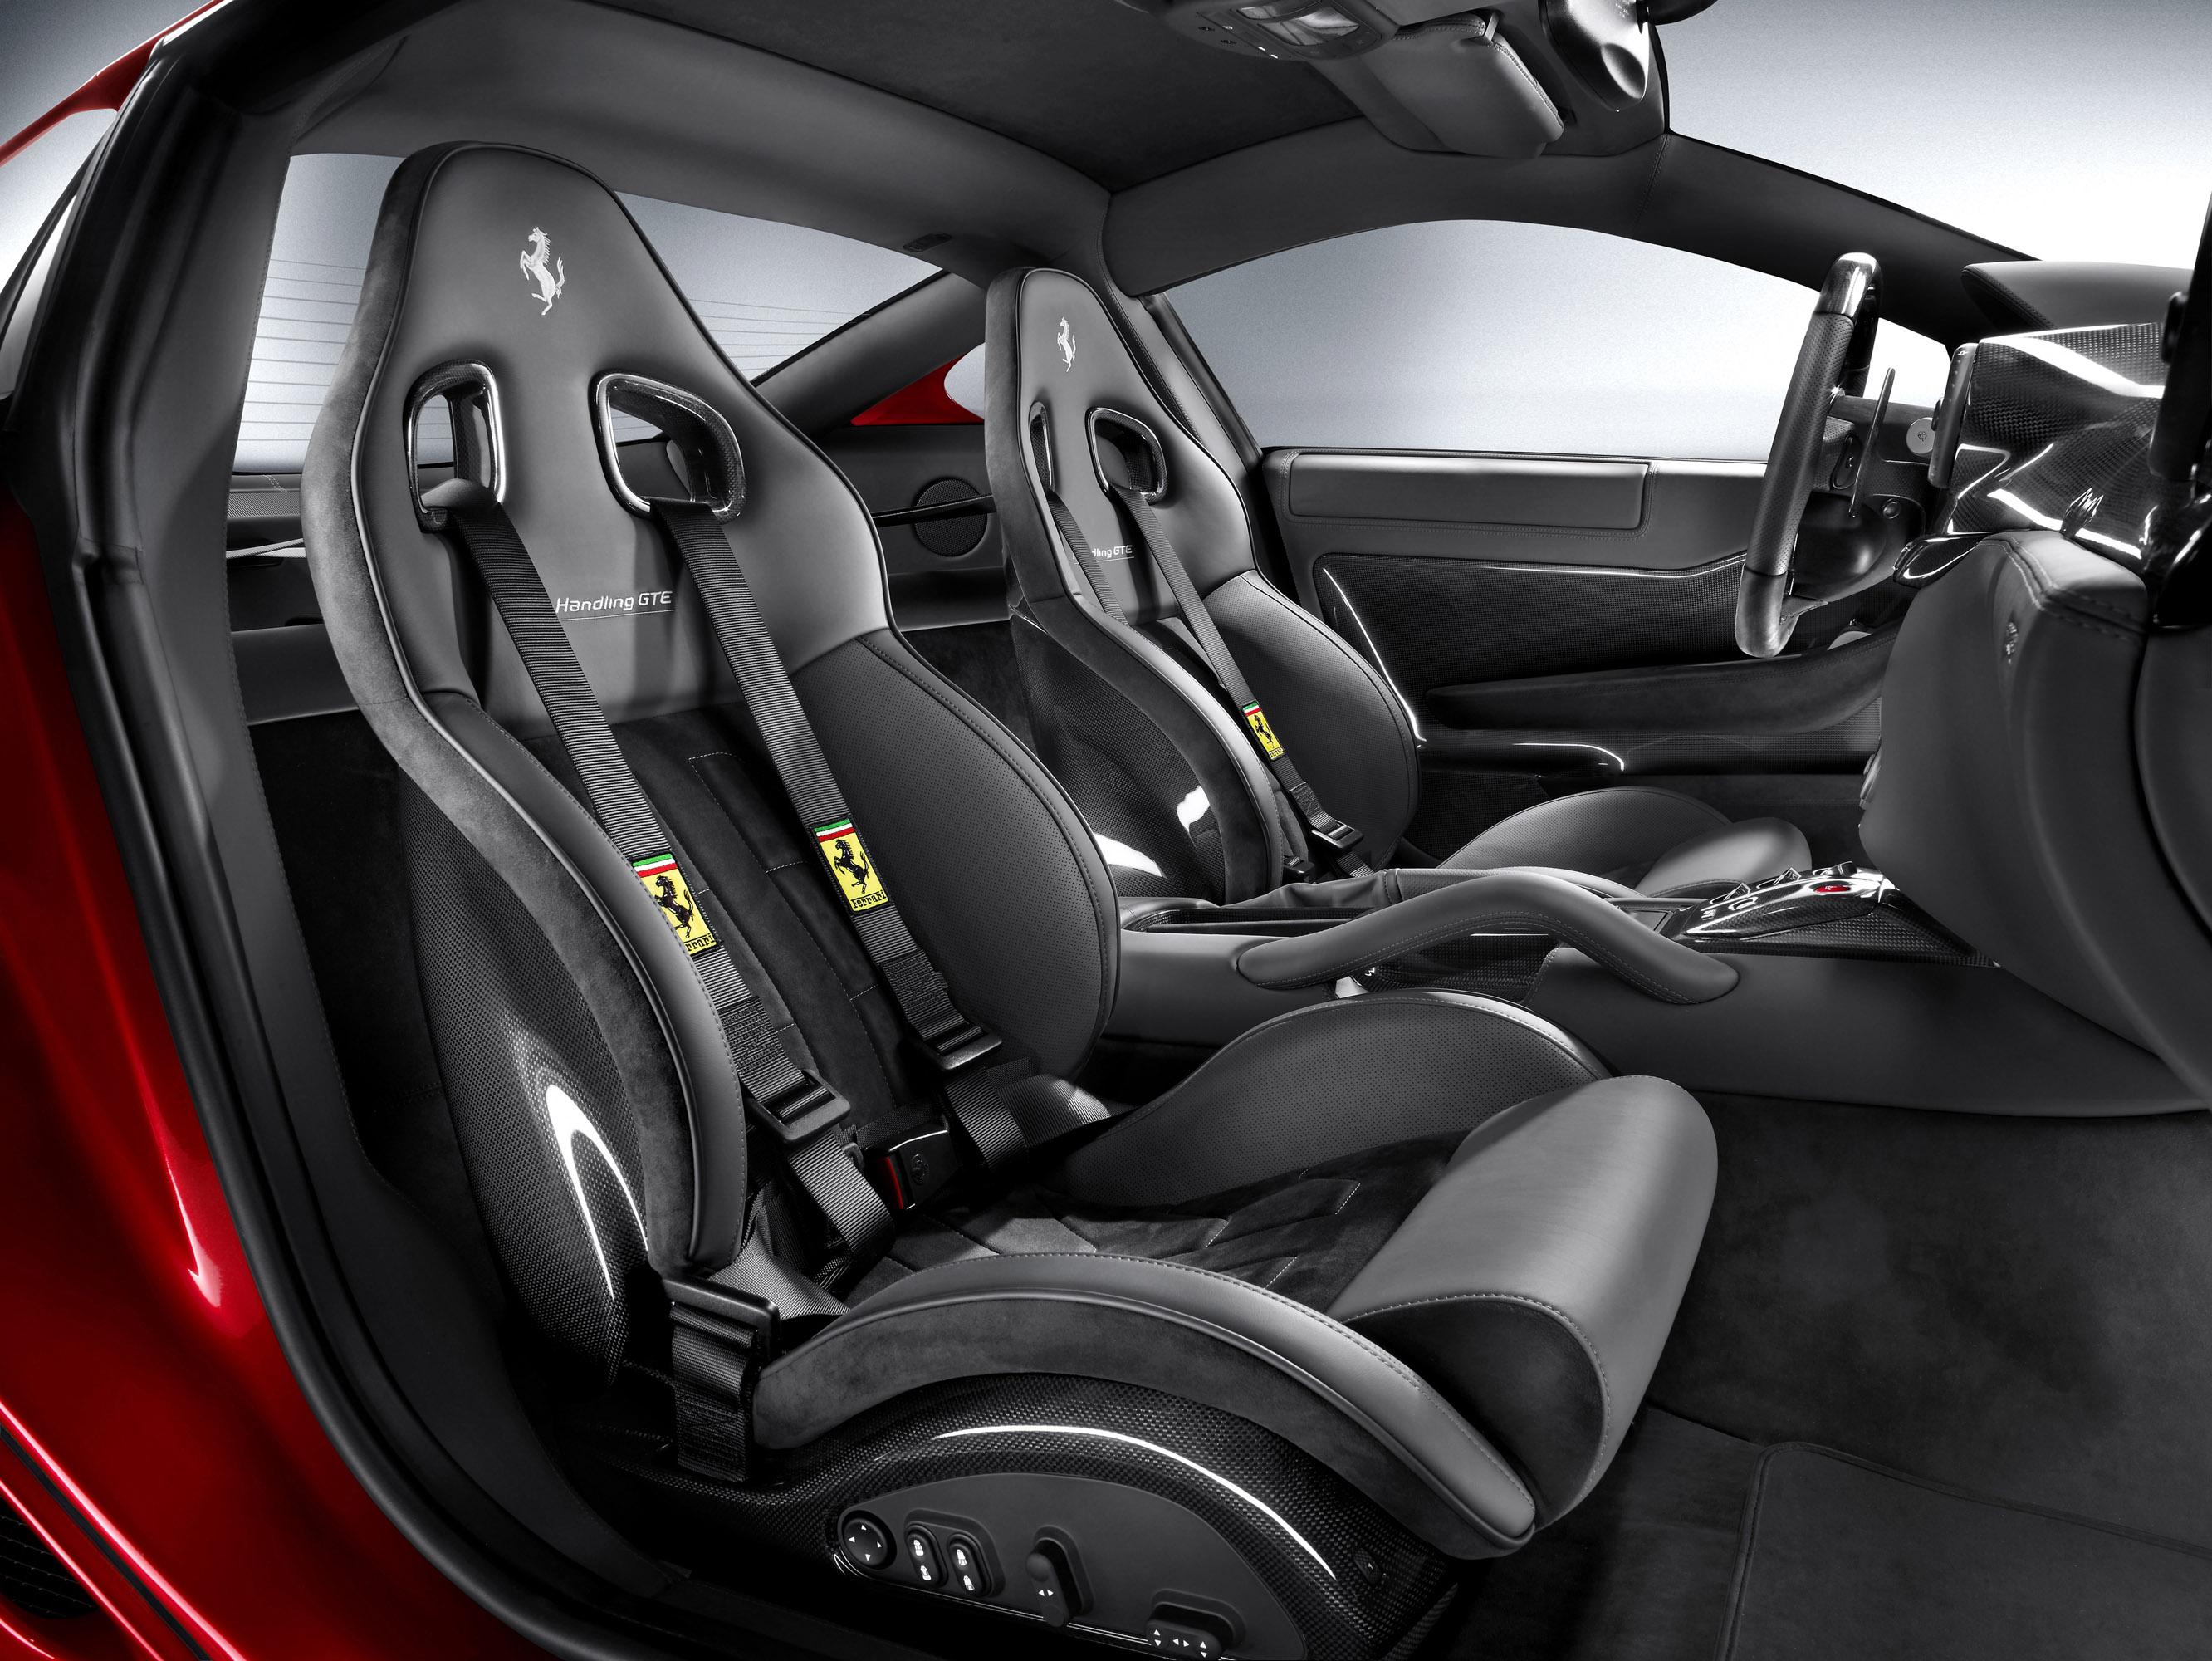 Ferrari 599 gtb fiorano review and photos for Chaise de voiture